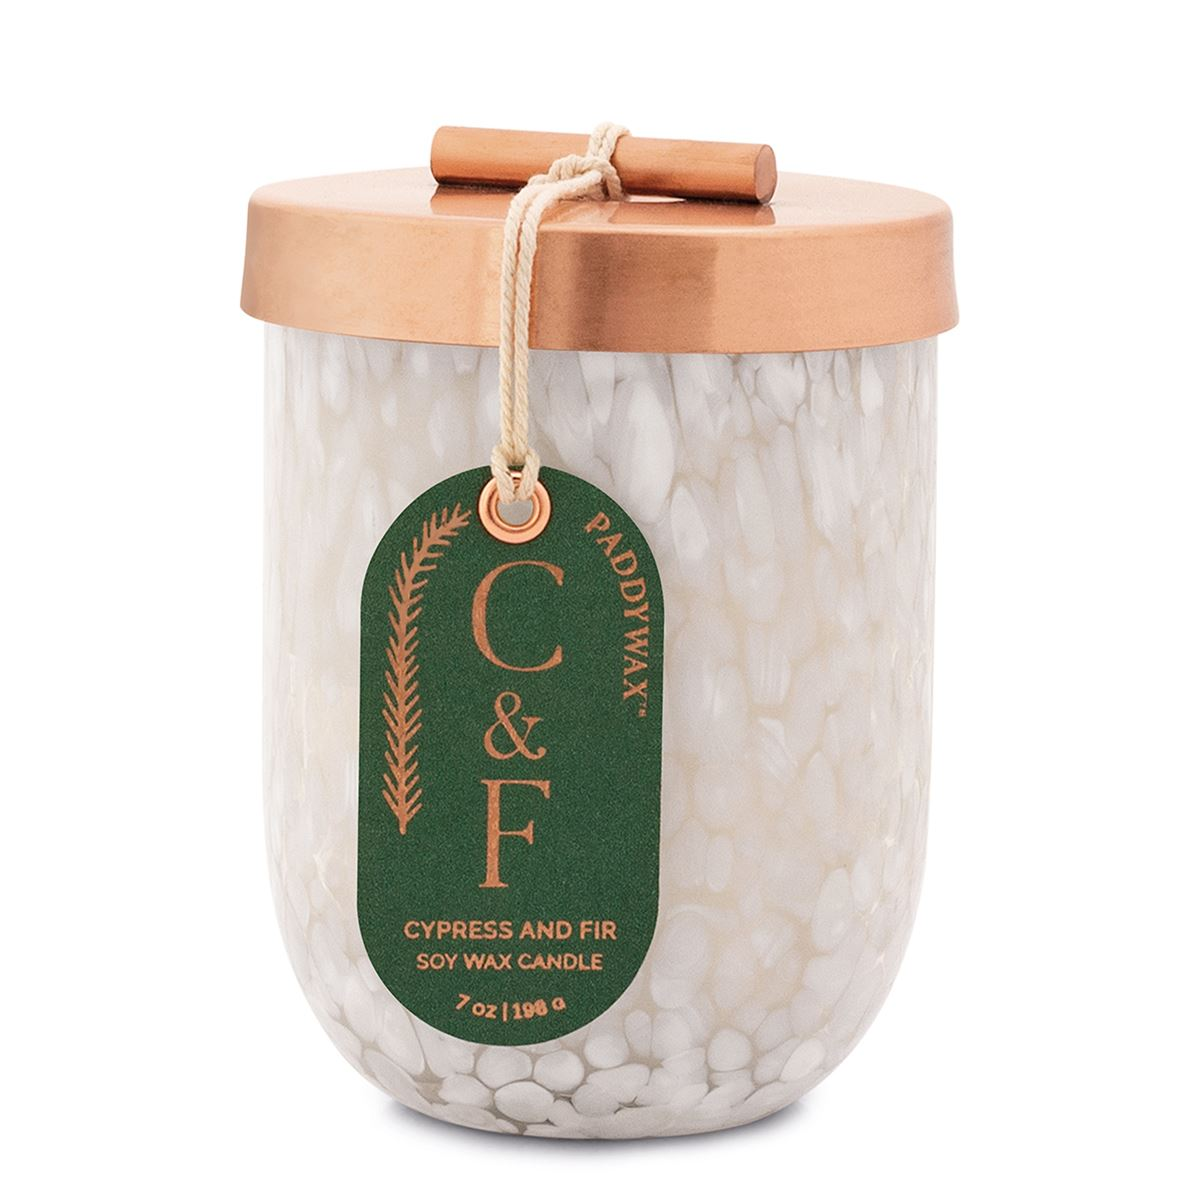 Paddywax Cypress and Fir 7oz White Cheena with Copper Lid